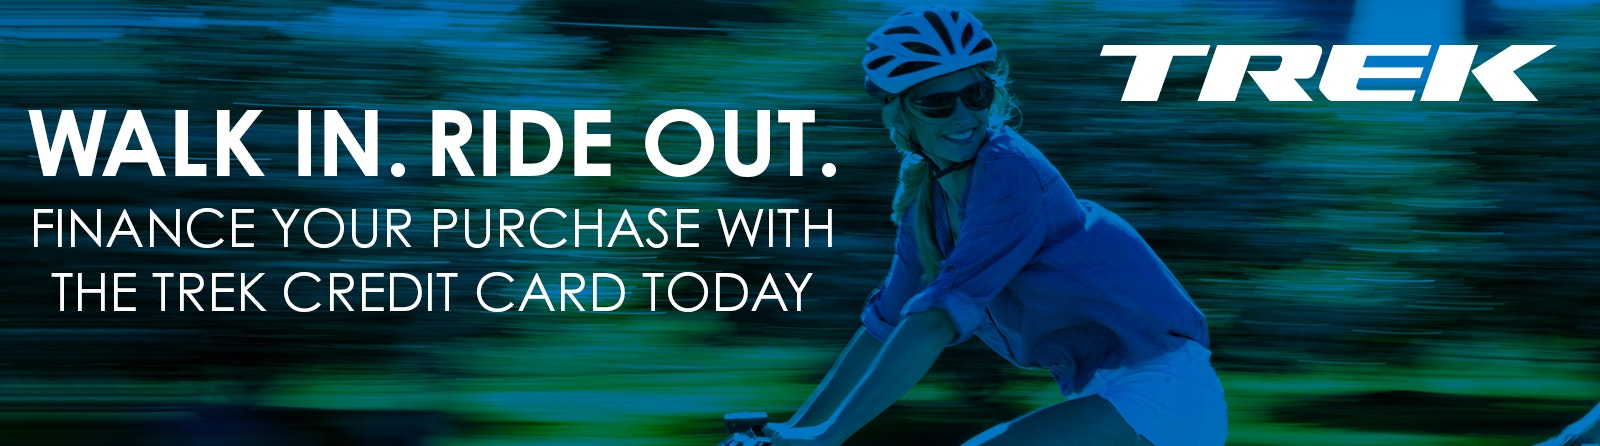 Trek Finance your purchace with Trek Credit today